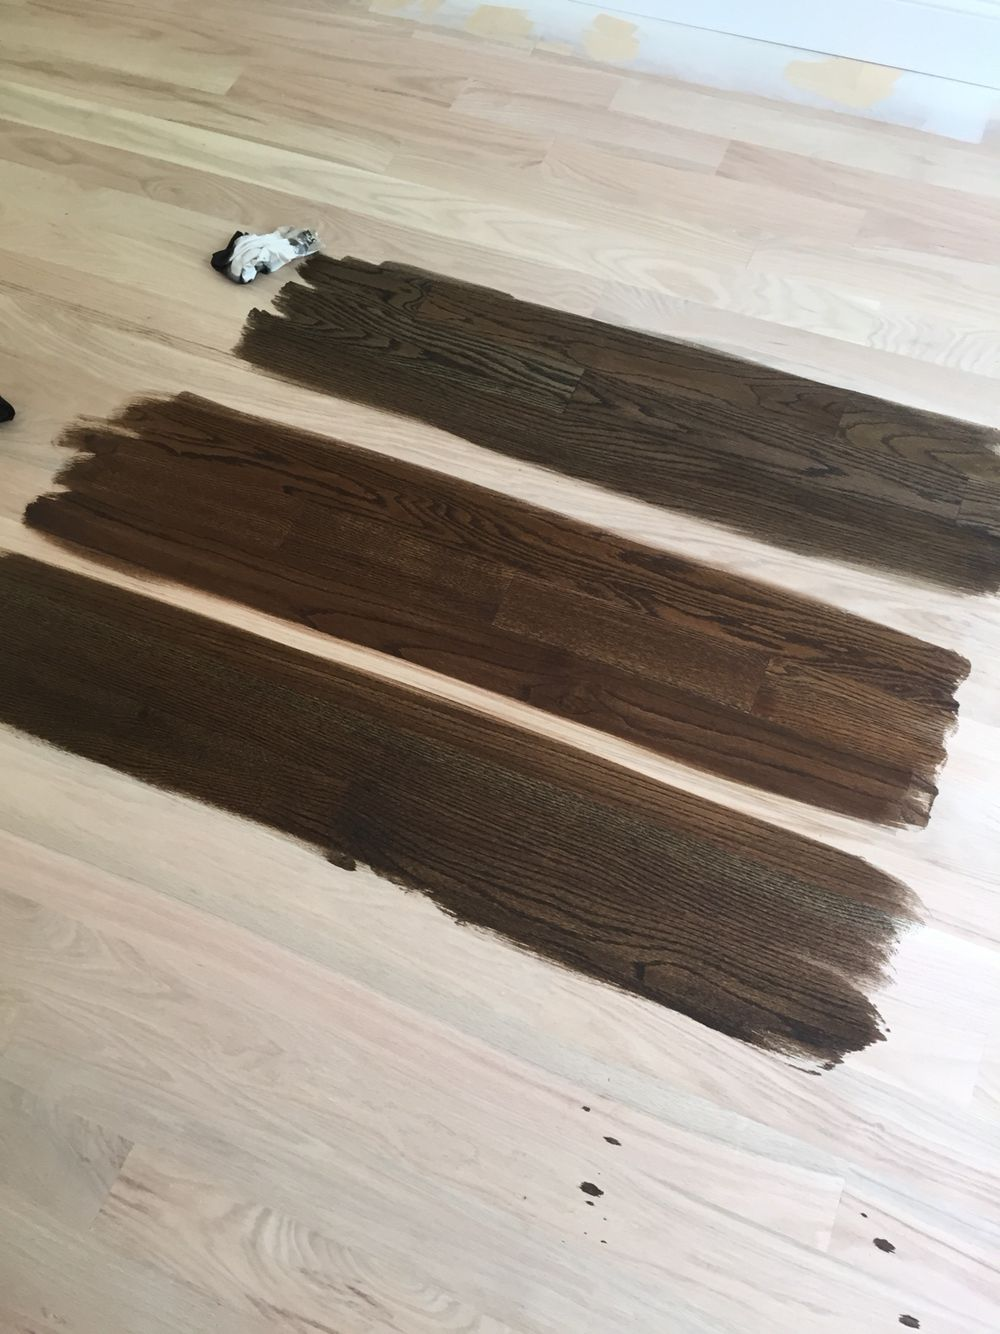 From Top Minwax Stains 50 50 Jacobean Ebony Jacobean And Dark Walnut Going With The J E Hardwood Floor Stain Colors Floor Stain Colors Wood Floor Colors